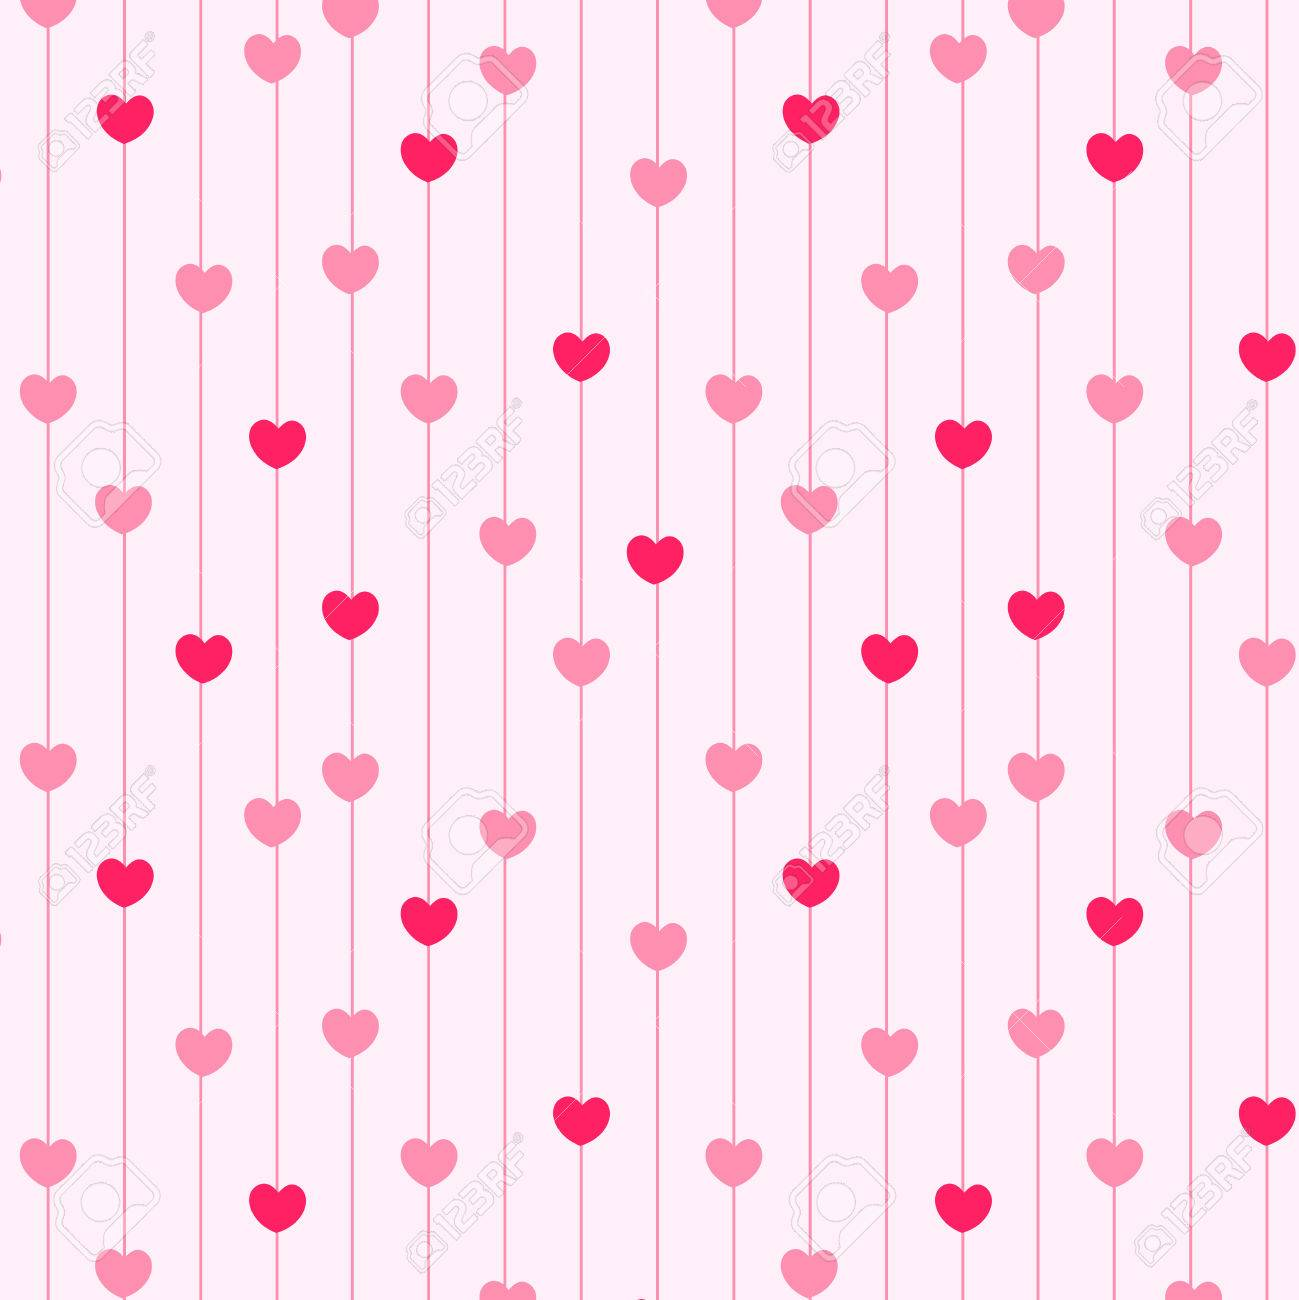 pink hearts seamless pattern love background royalty free cliparts vectors and stock illustration image 62403511 pink hearts seamless pattern love background